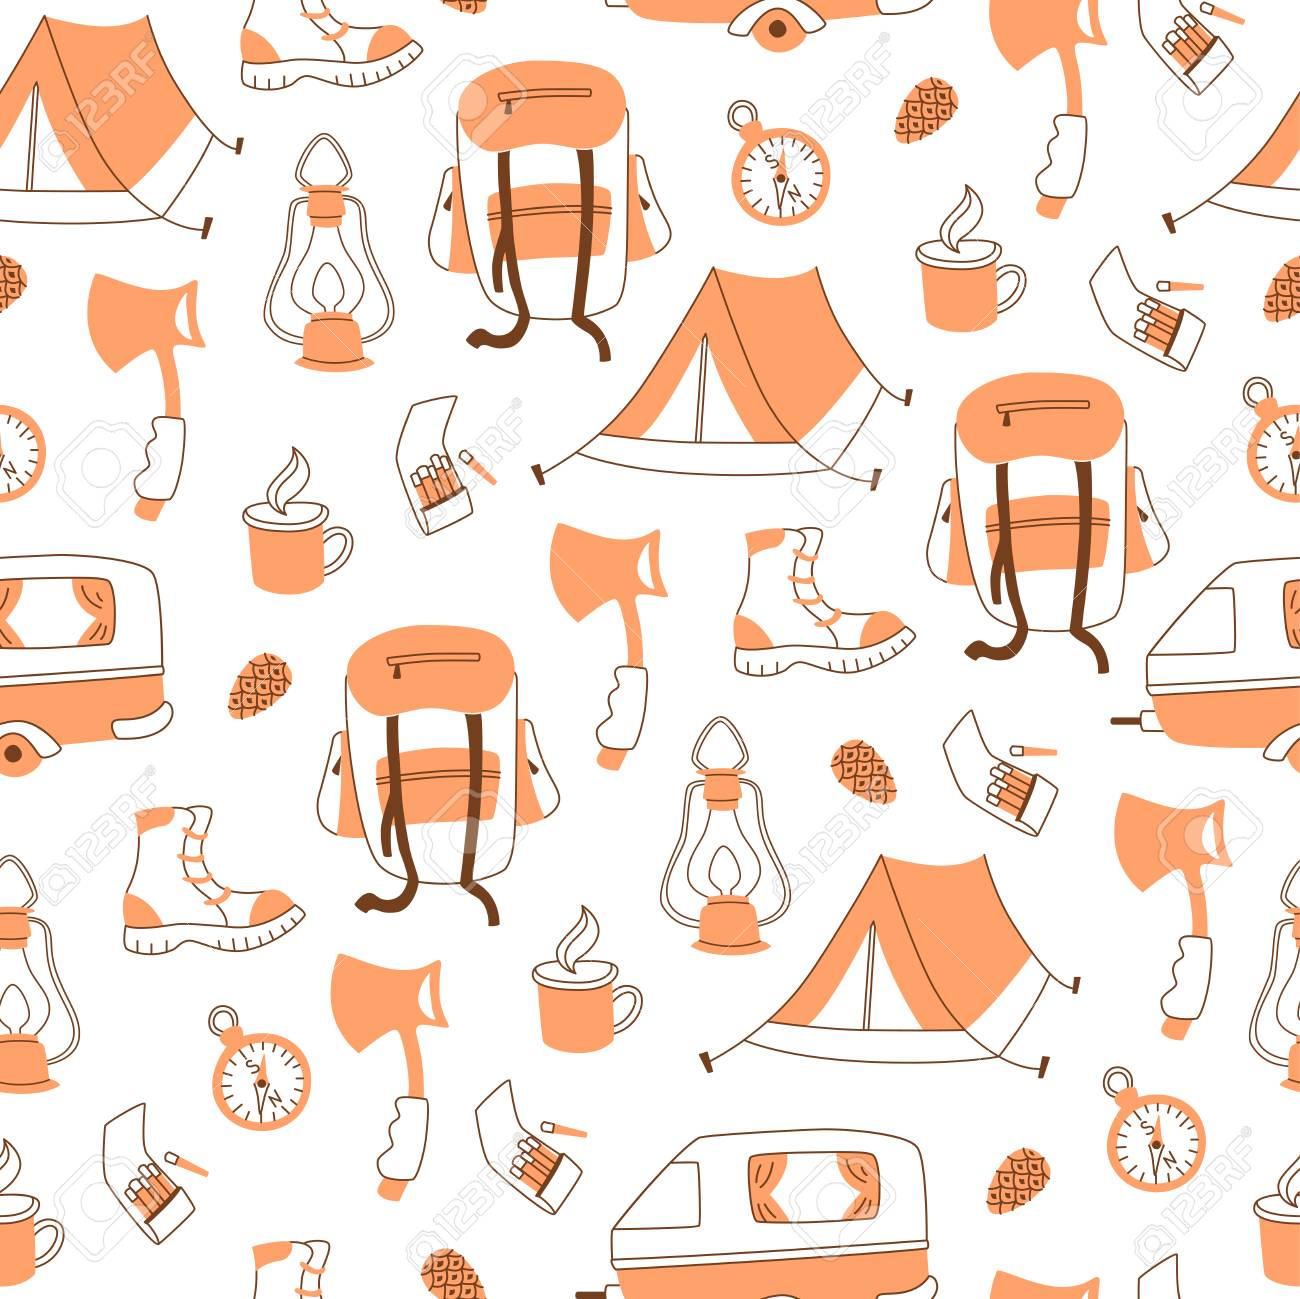 Camping Hand Drawn Pattern For Wallpaper Royalty Free Cliparts Vectors And Stock Illustration Image 100483000